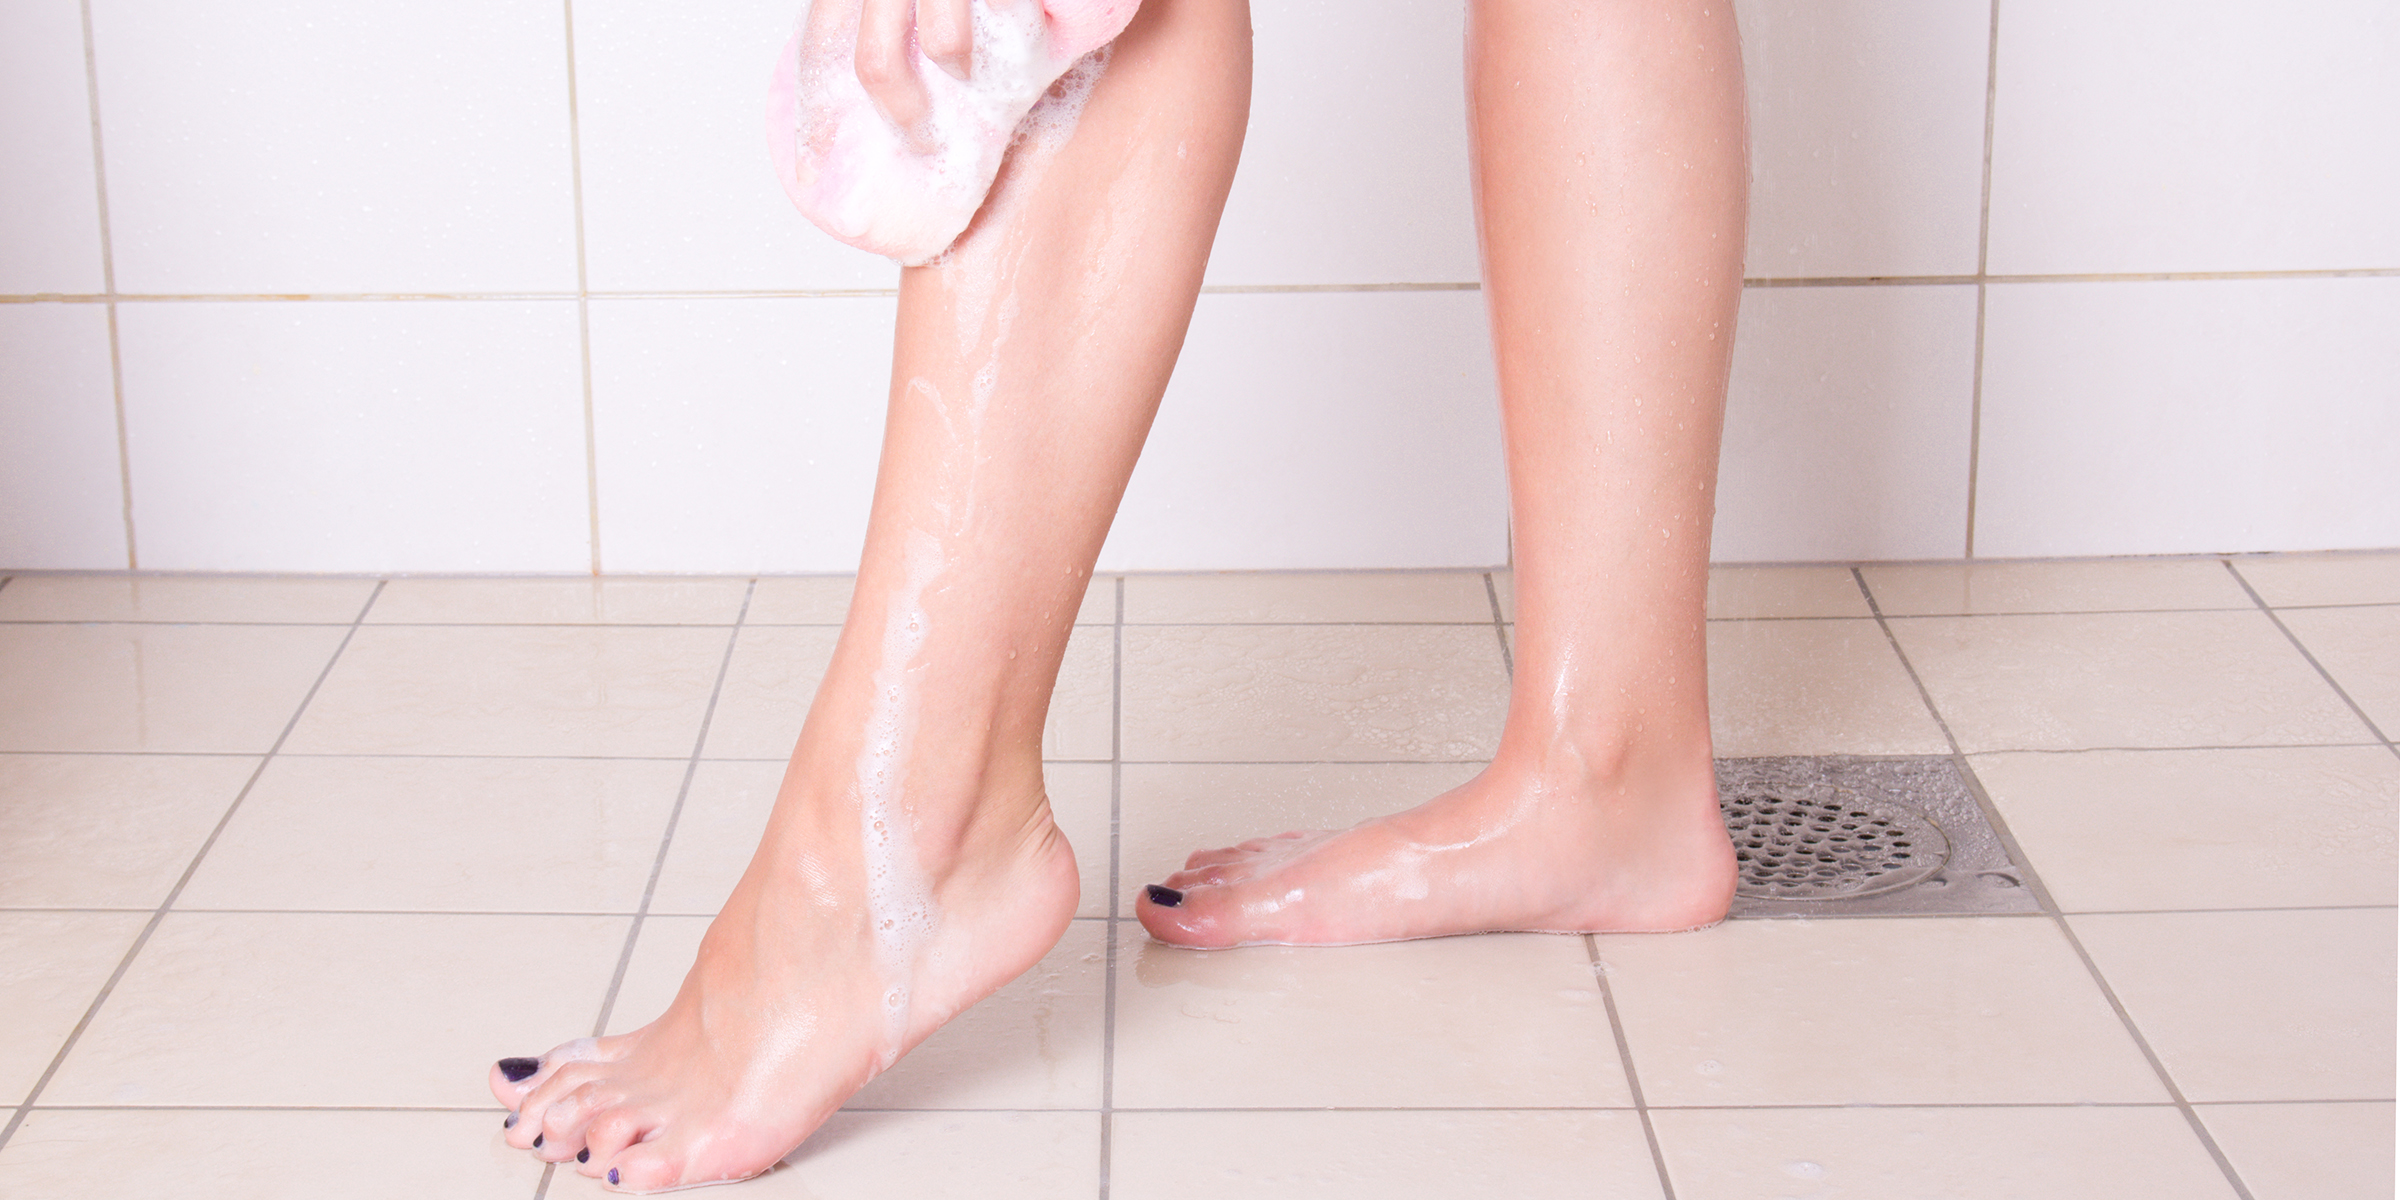 Do you wash your legs in the shower? The internet is divided